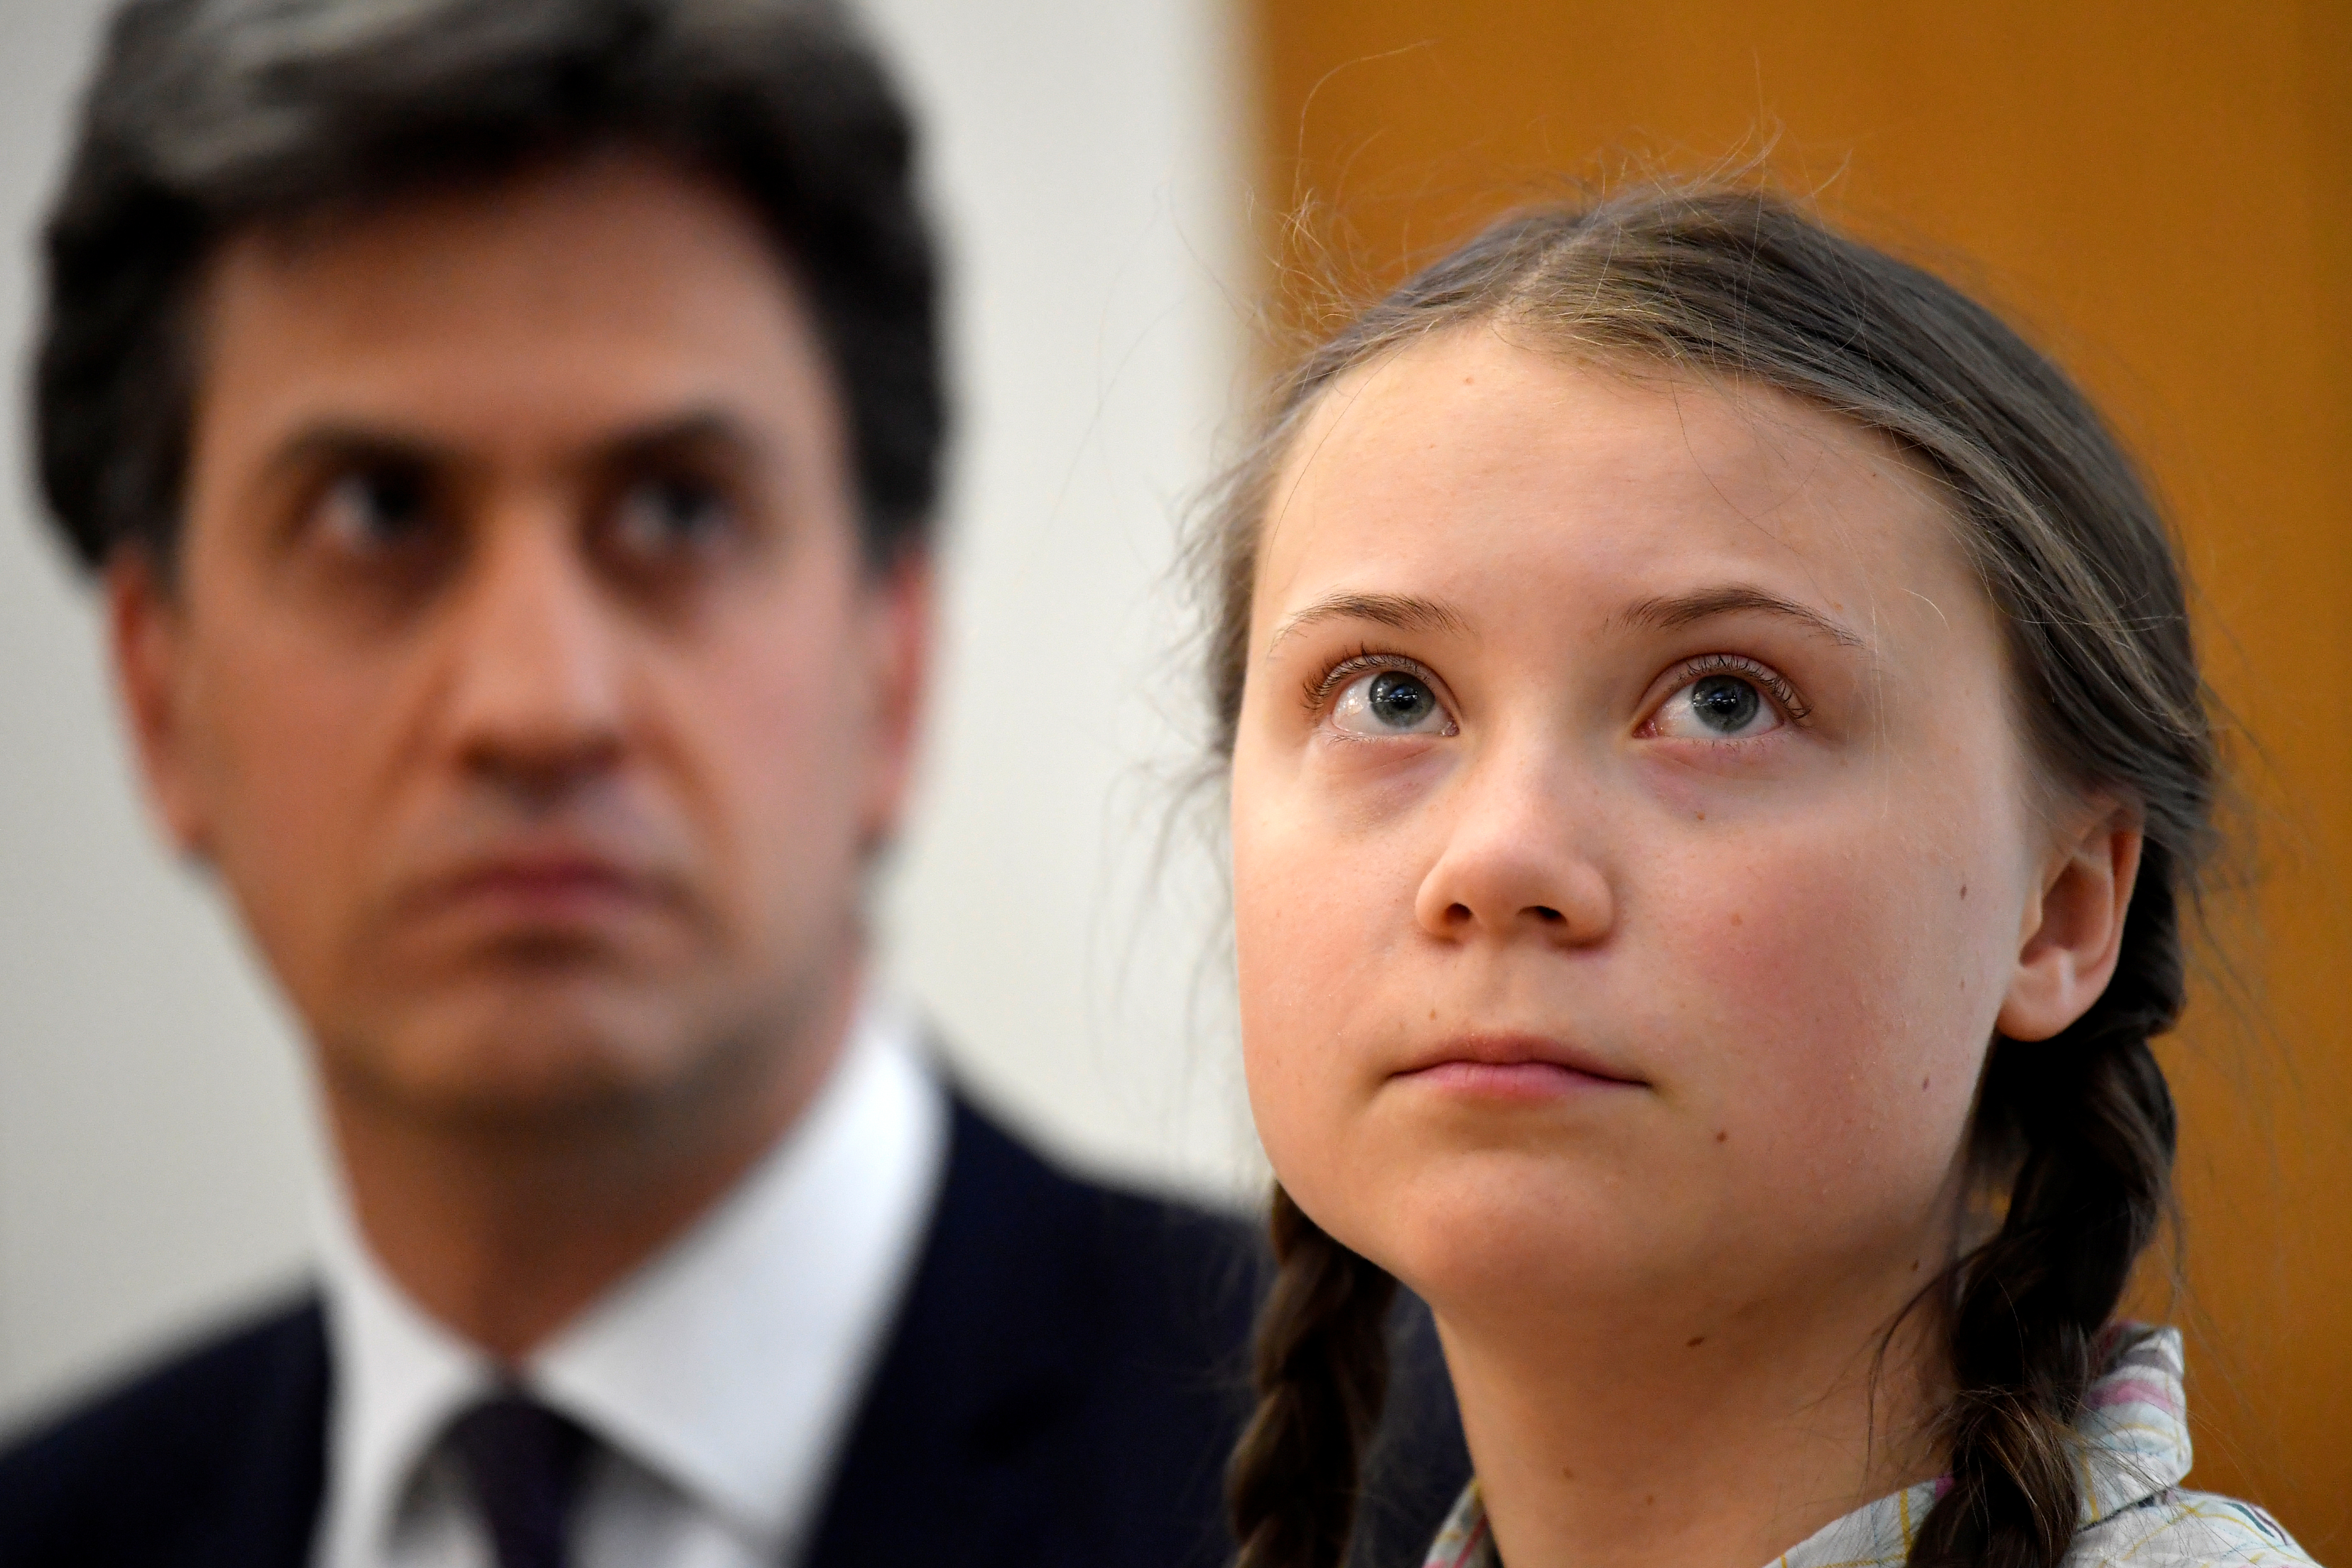 Swedish environmental activist Greta Thunberg looks on next to the former leader of Britain's opposition Labour Party Ed Miliband at the House of Commons as guest of Caroline Lucas, in London, Britain April 23, 2019. REUTERS/Toby Melville